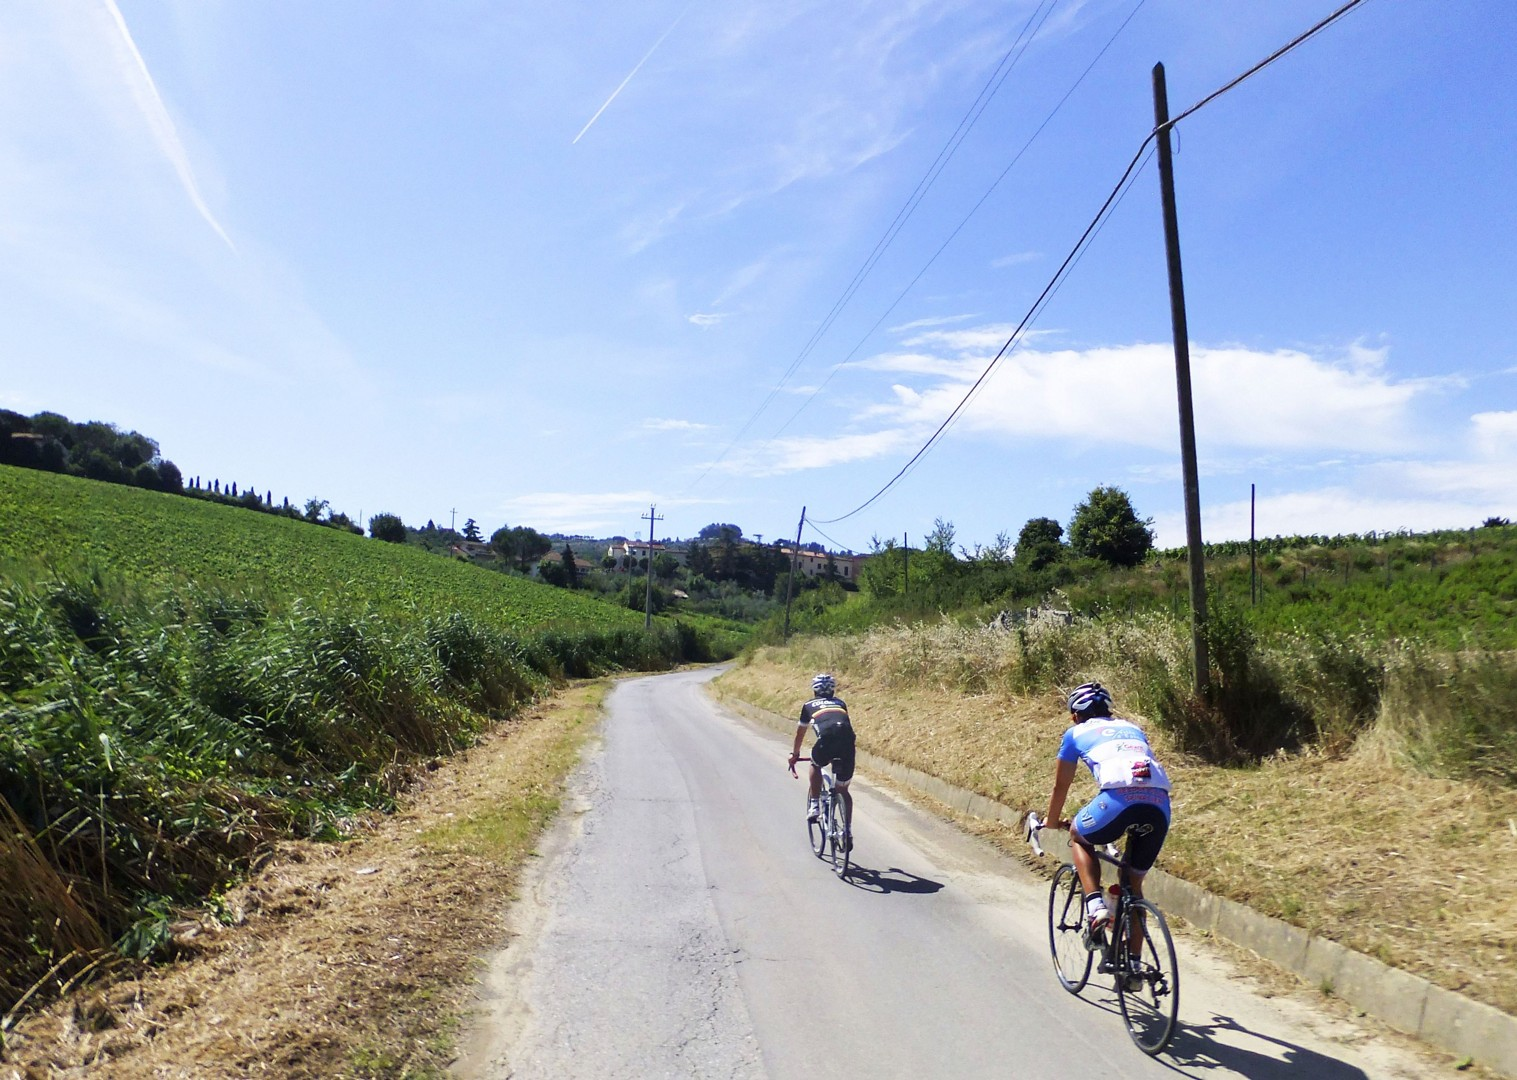 gavi-guided-road-cycling-holiday-italy-piemonte-la-strada-del-vino.jpg - Italy - Piemonte - La Strada del Vino - Guided Road Cycling Holiday - Road Cycling